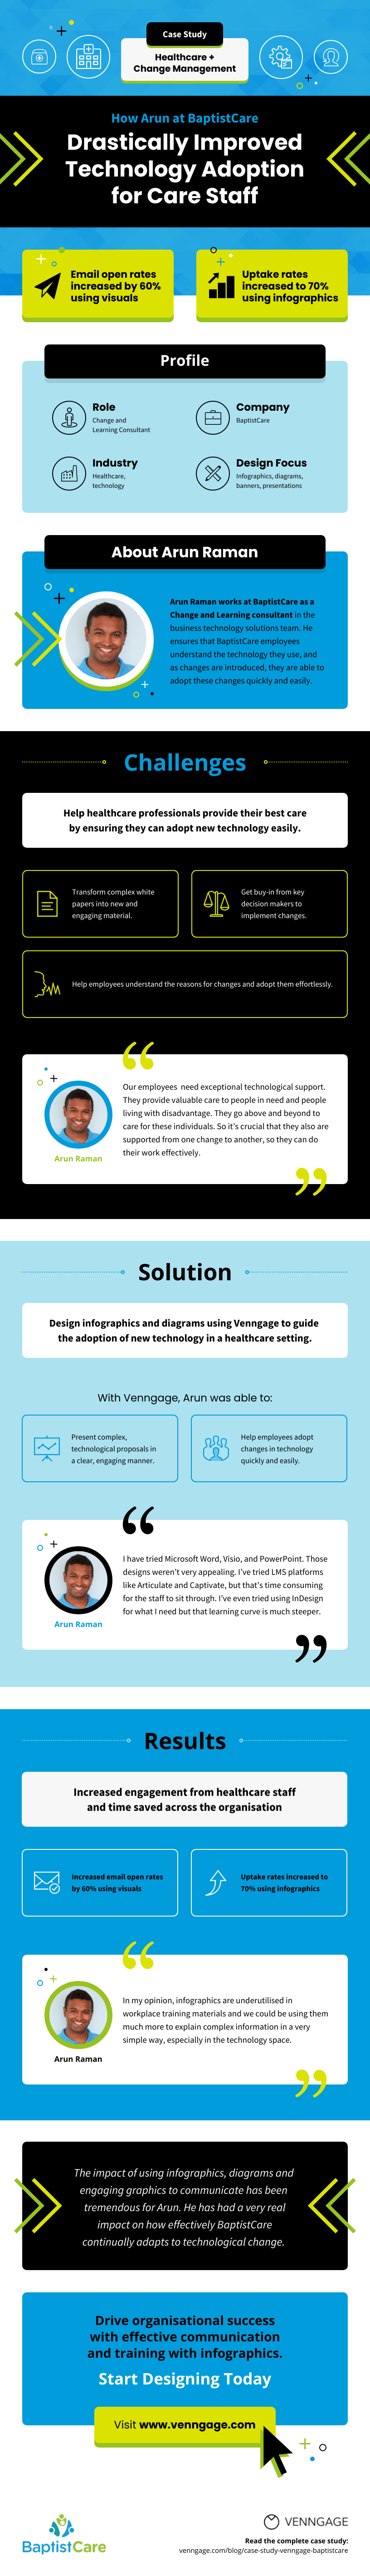 BaptistCare Case Study Featured Infographic